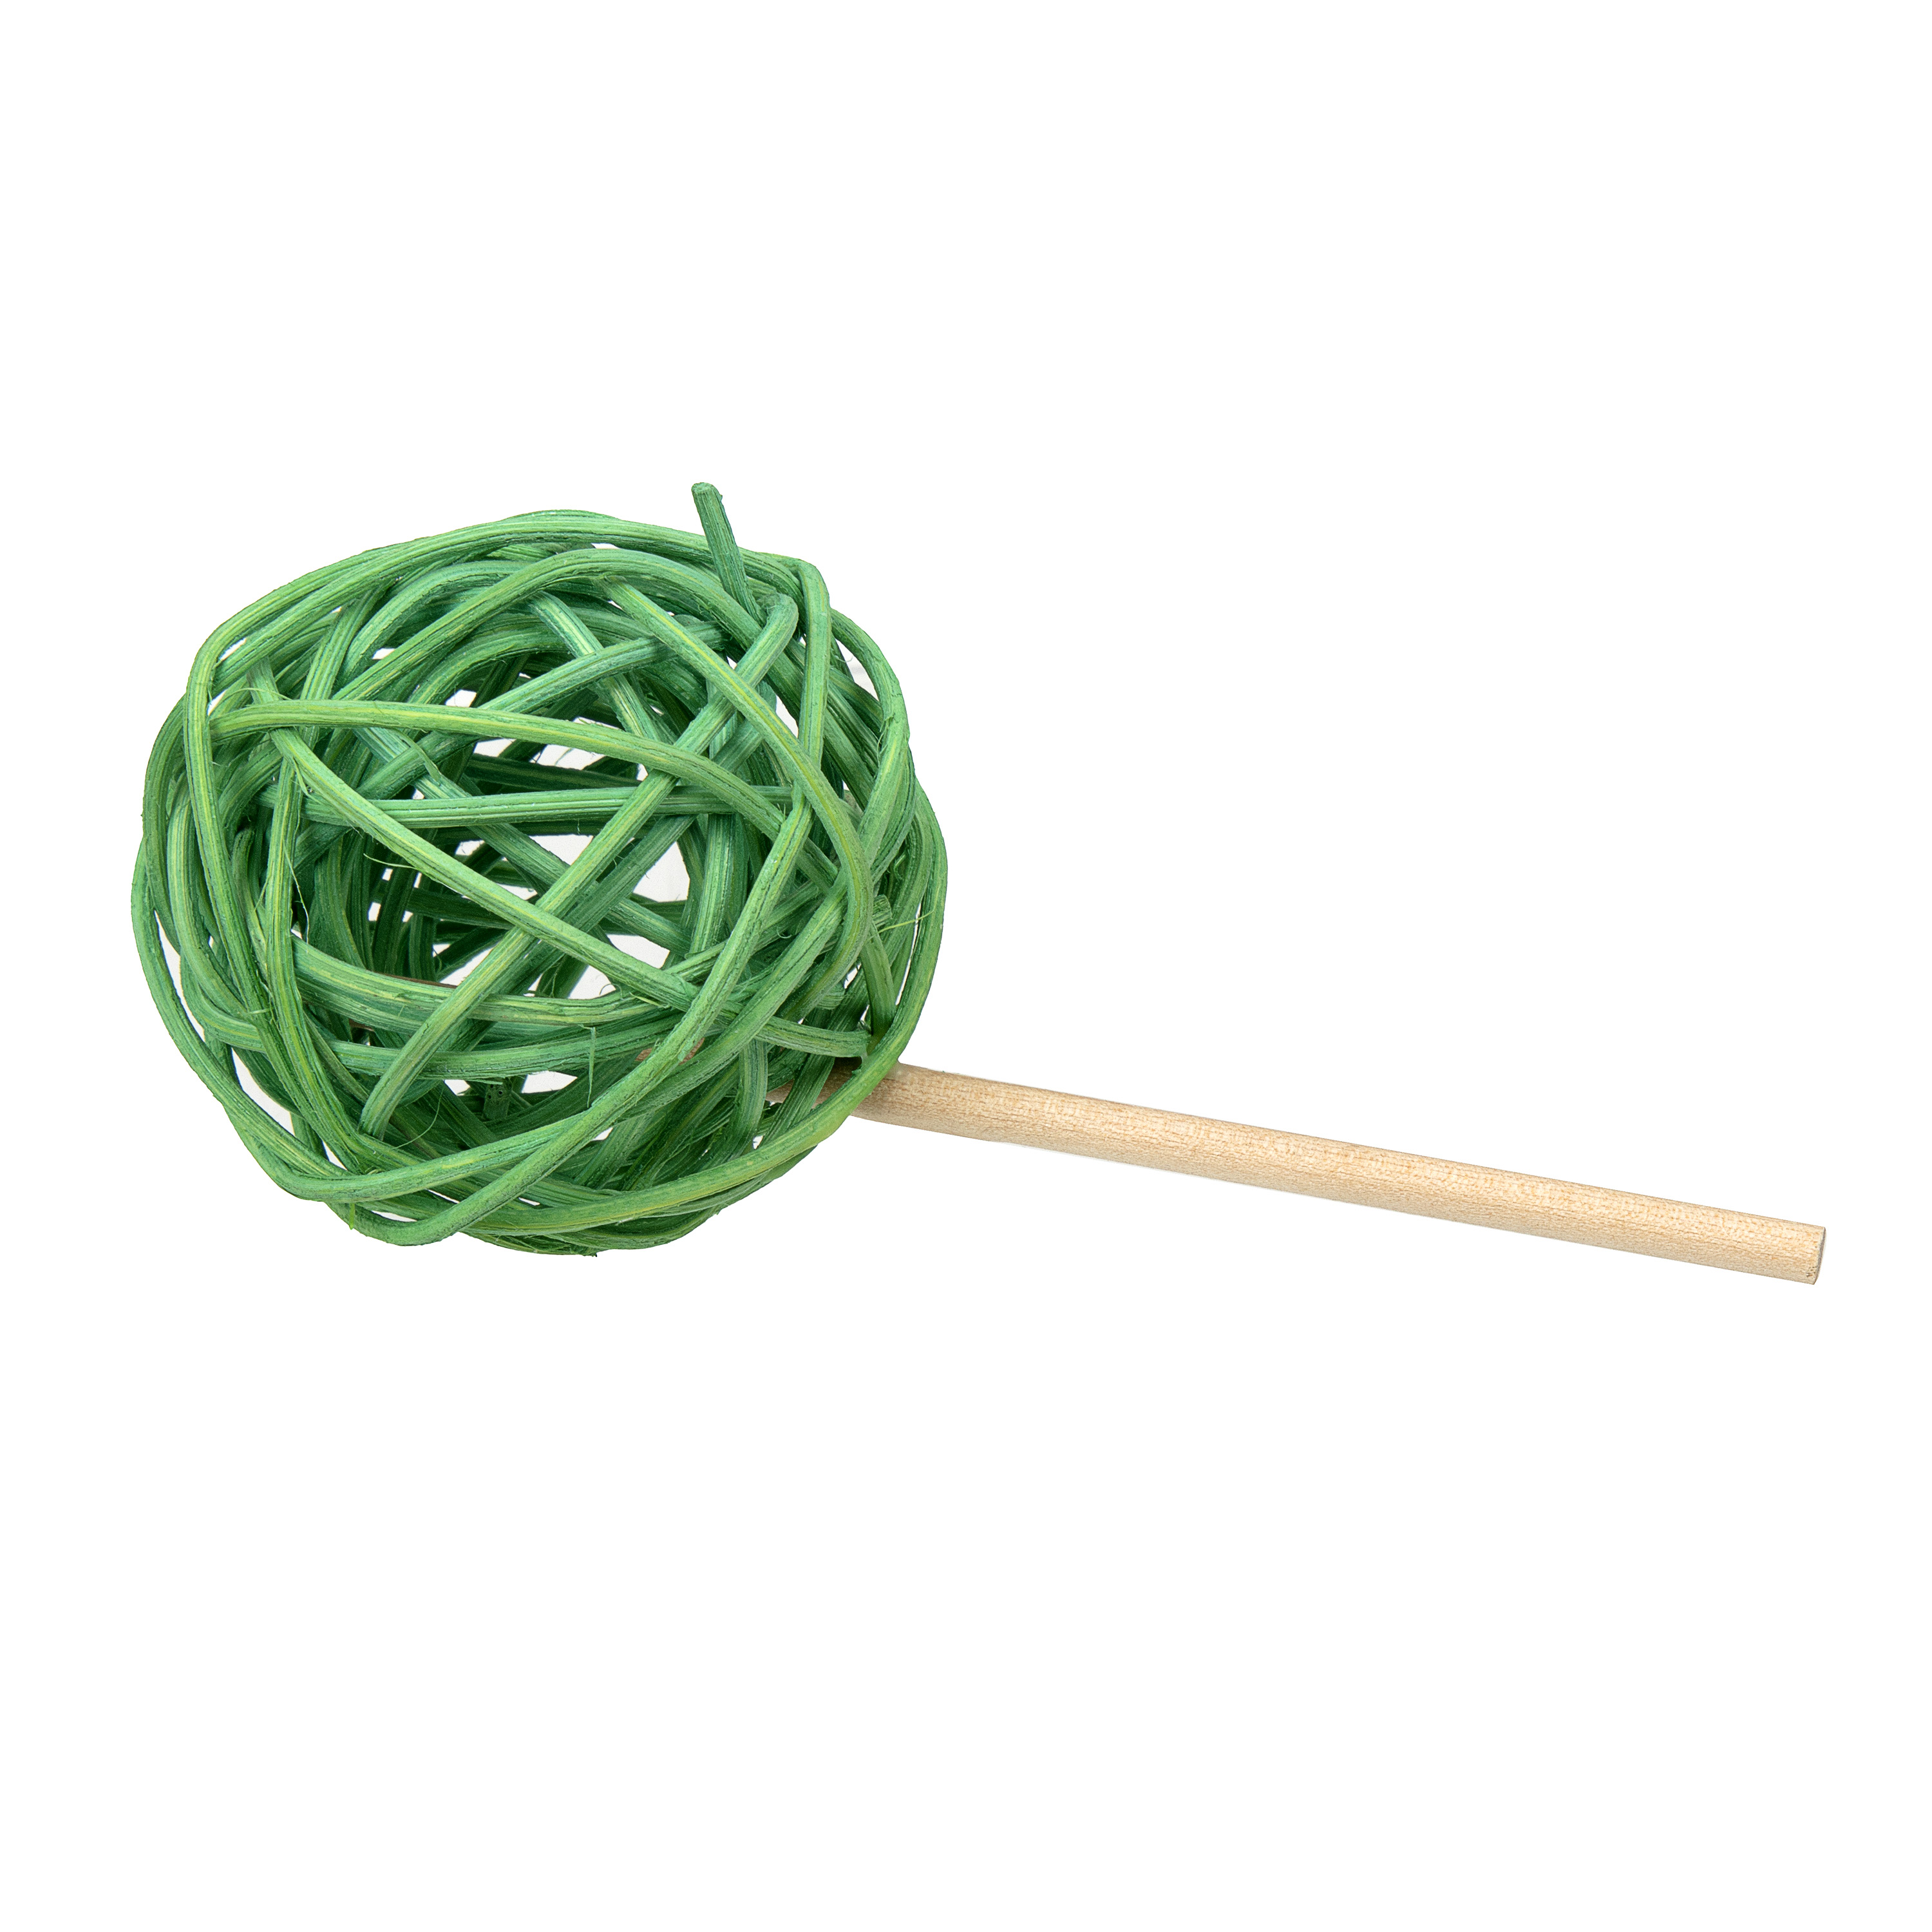 Lolly-Pop Chew Assorted Color